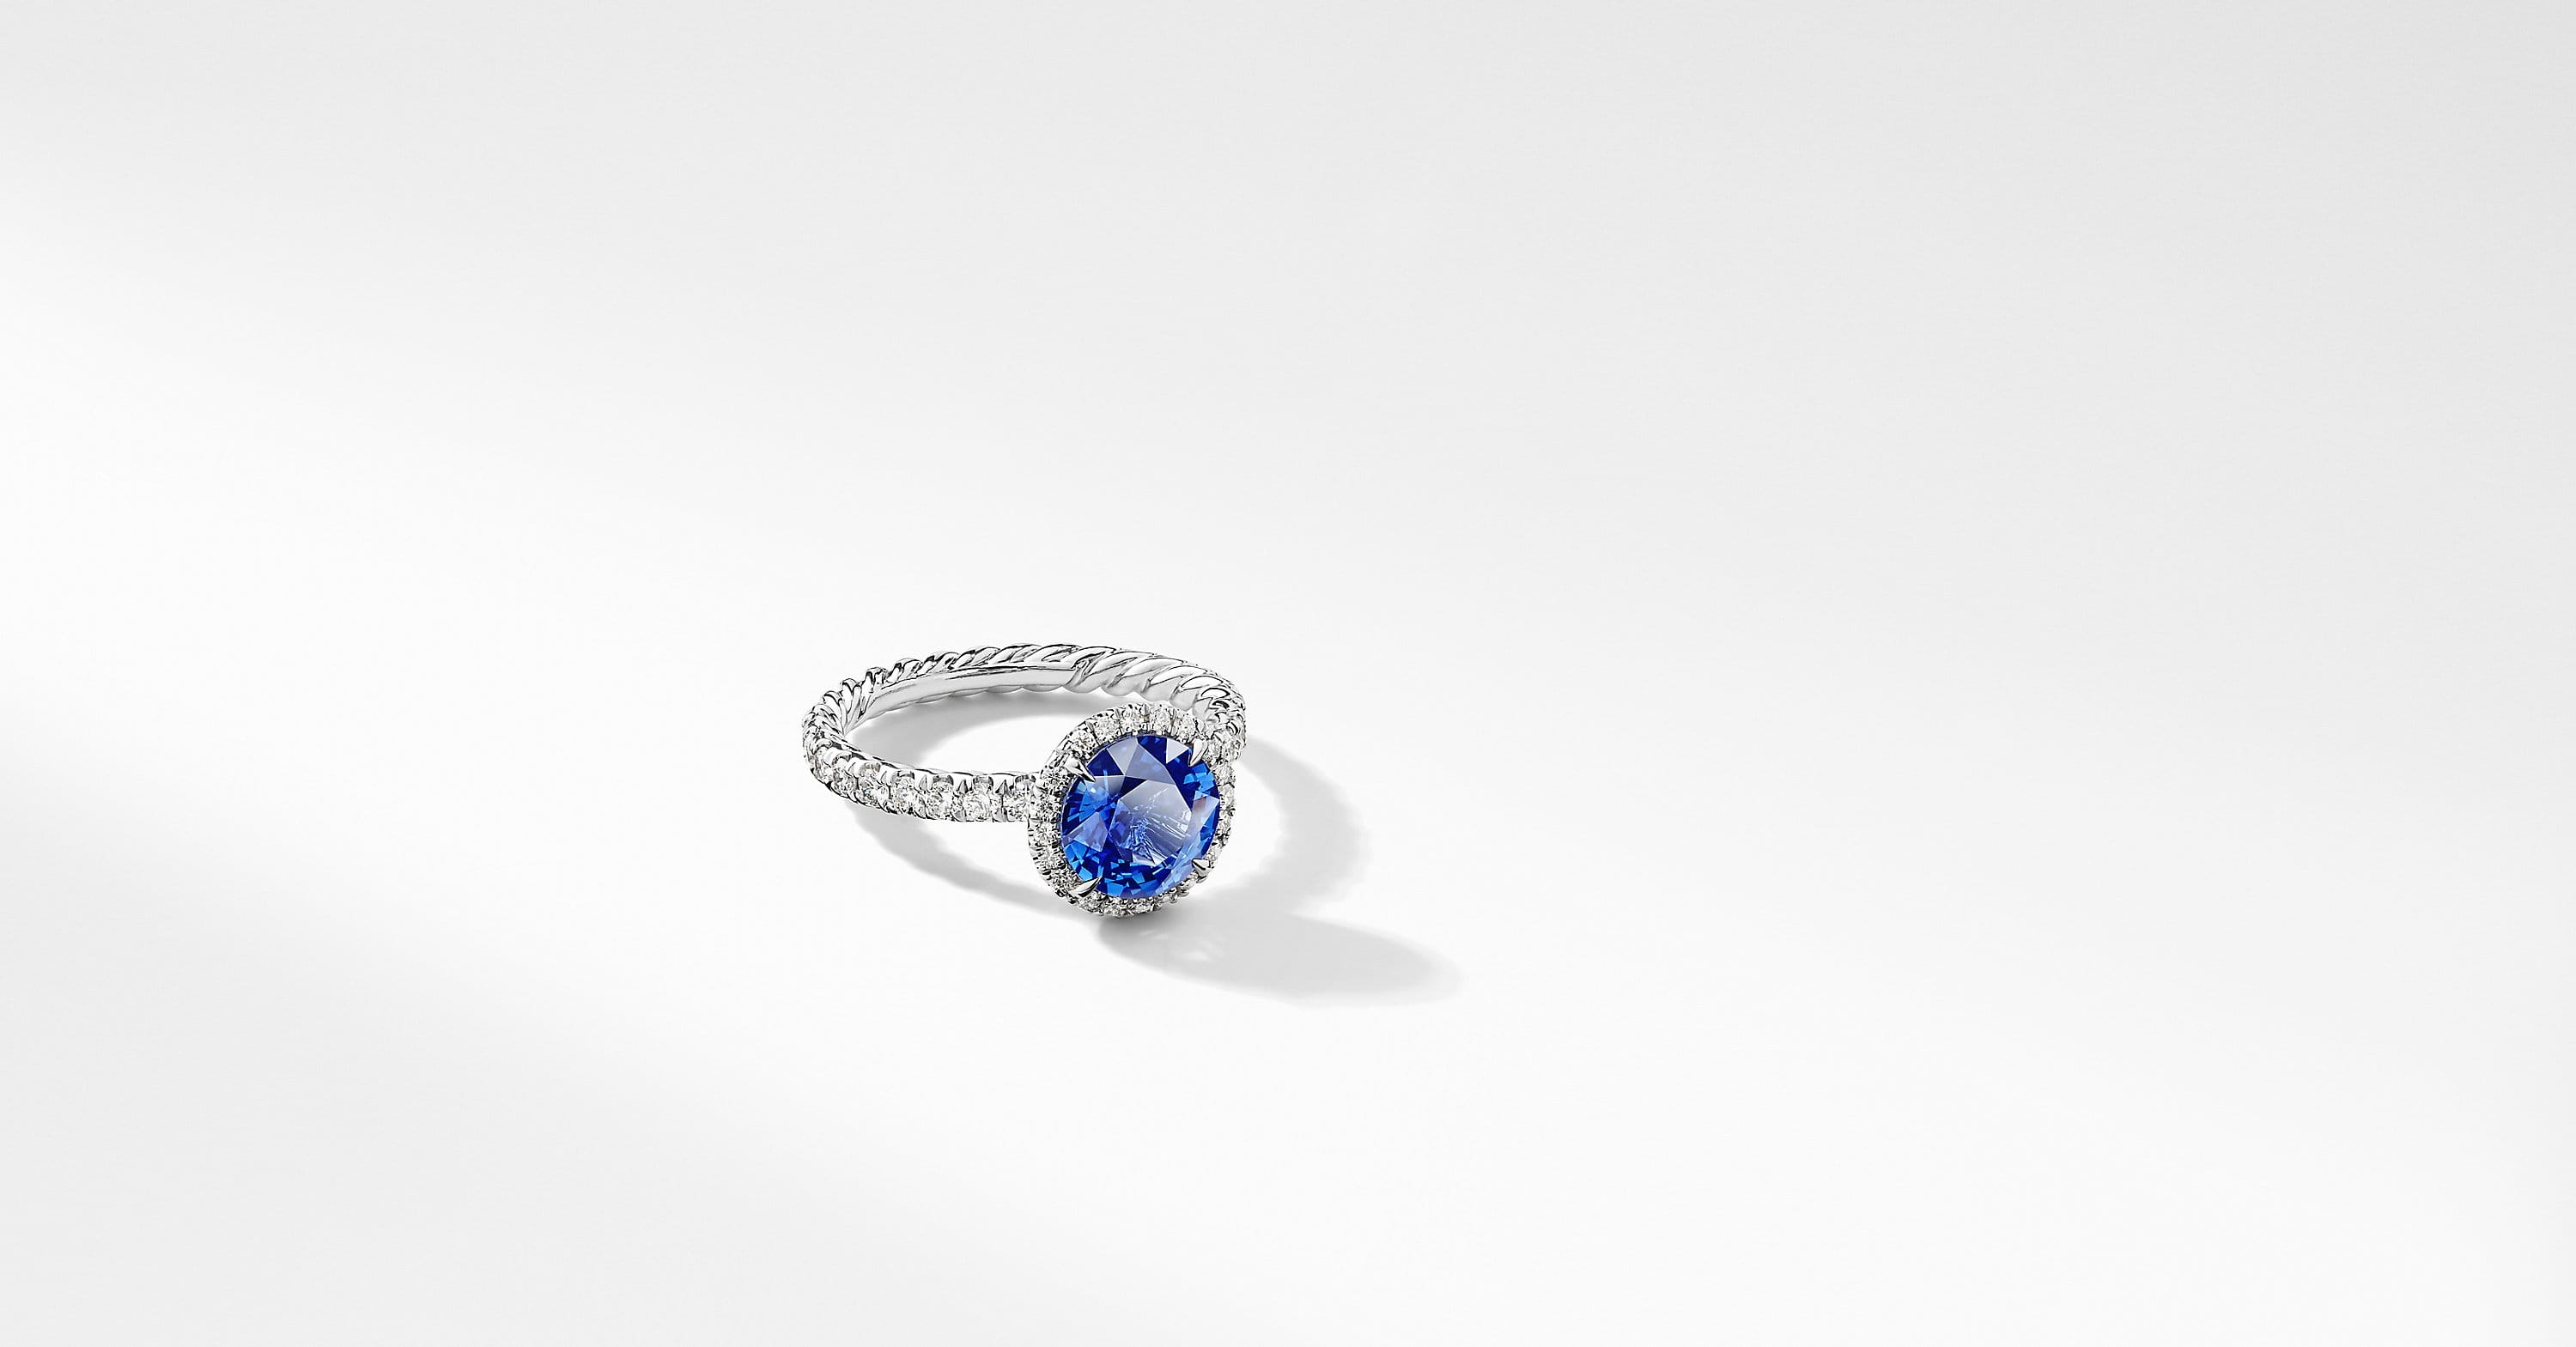 DY Capri Pavé Engagement Ring in Platinum with Blue Sapphire, Round